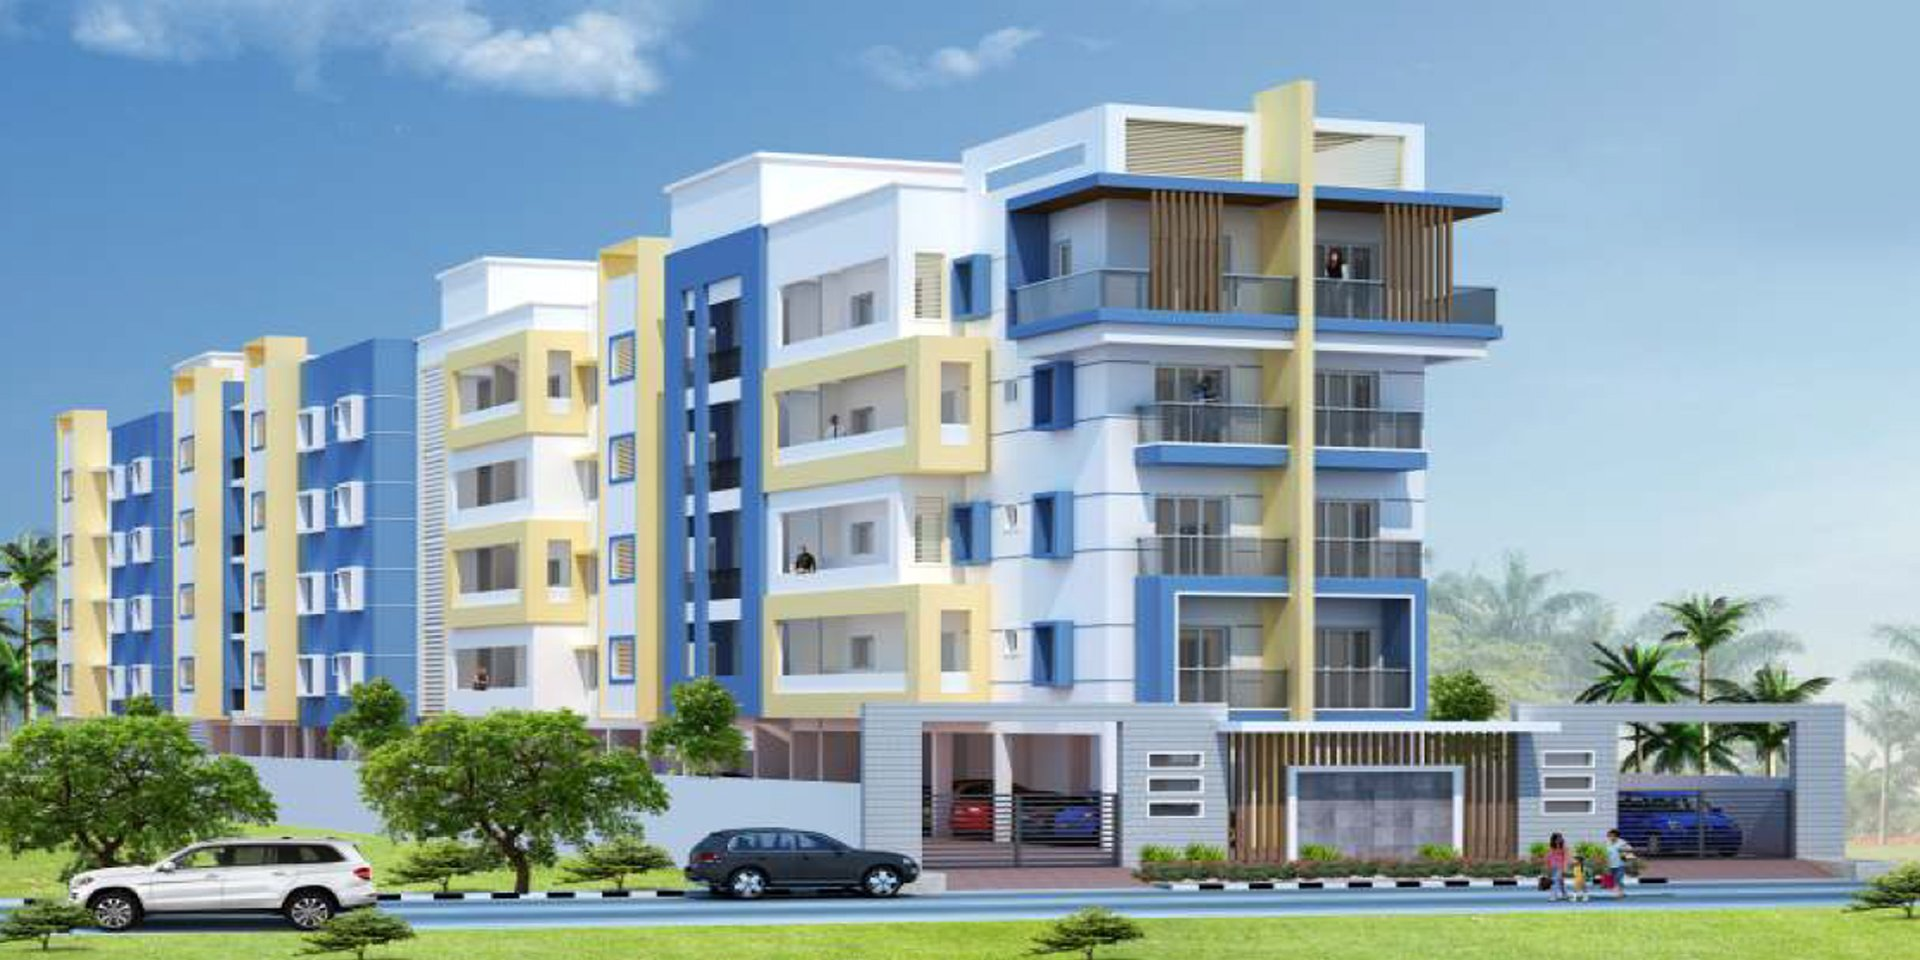 Flats for sale in JMM Celsia Siruseri